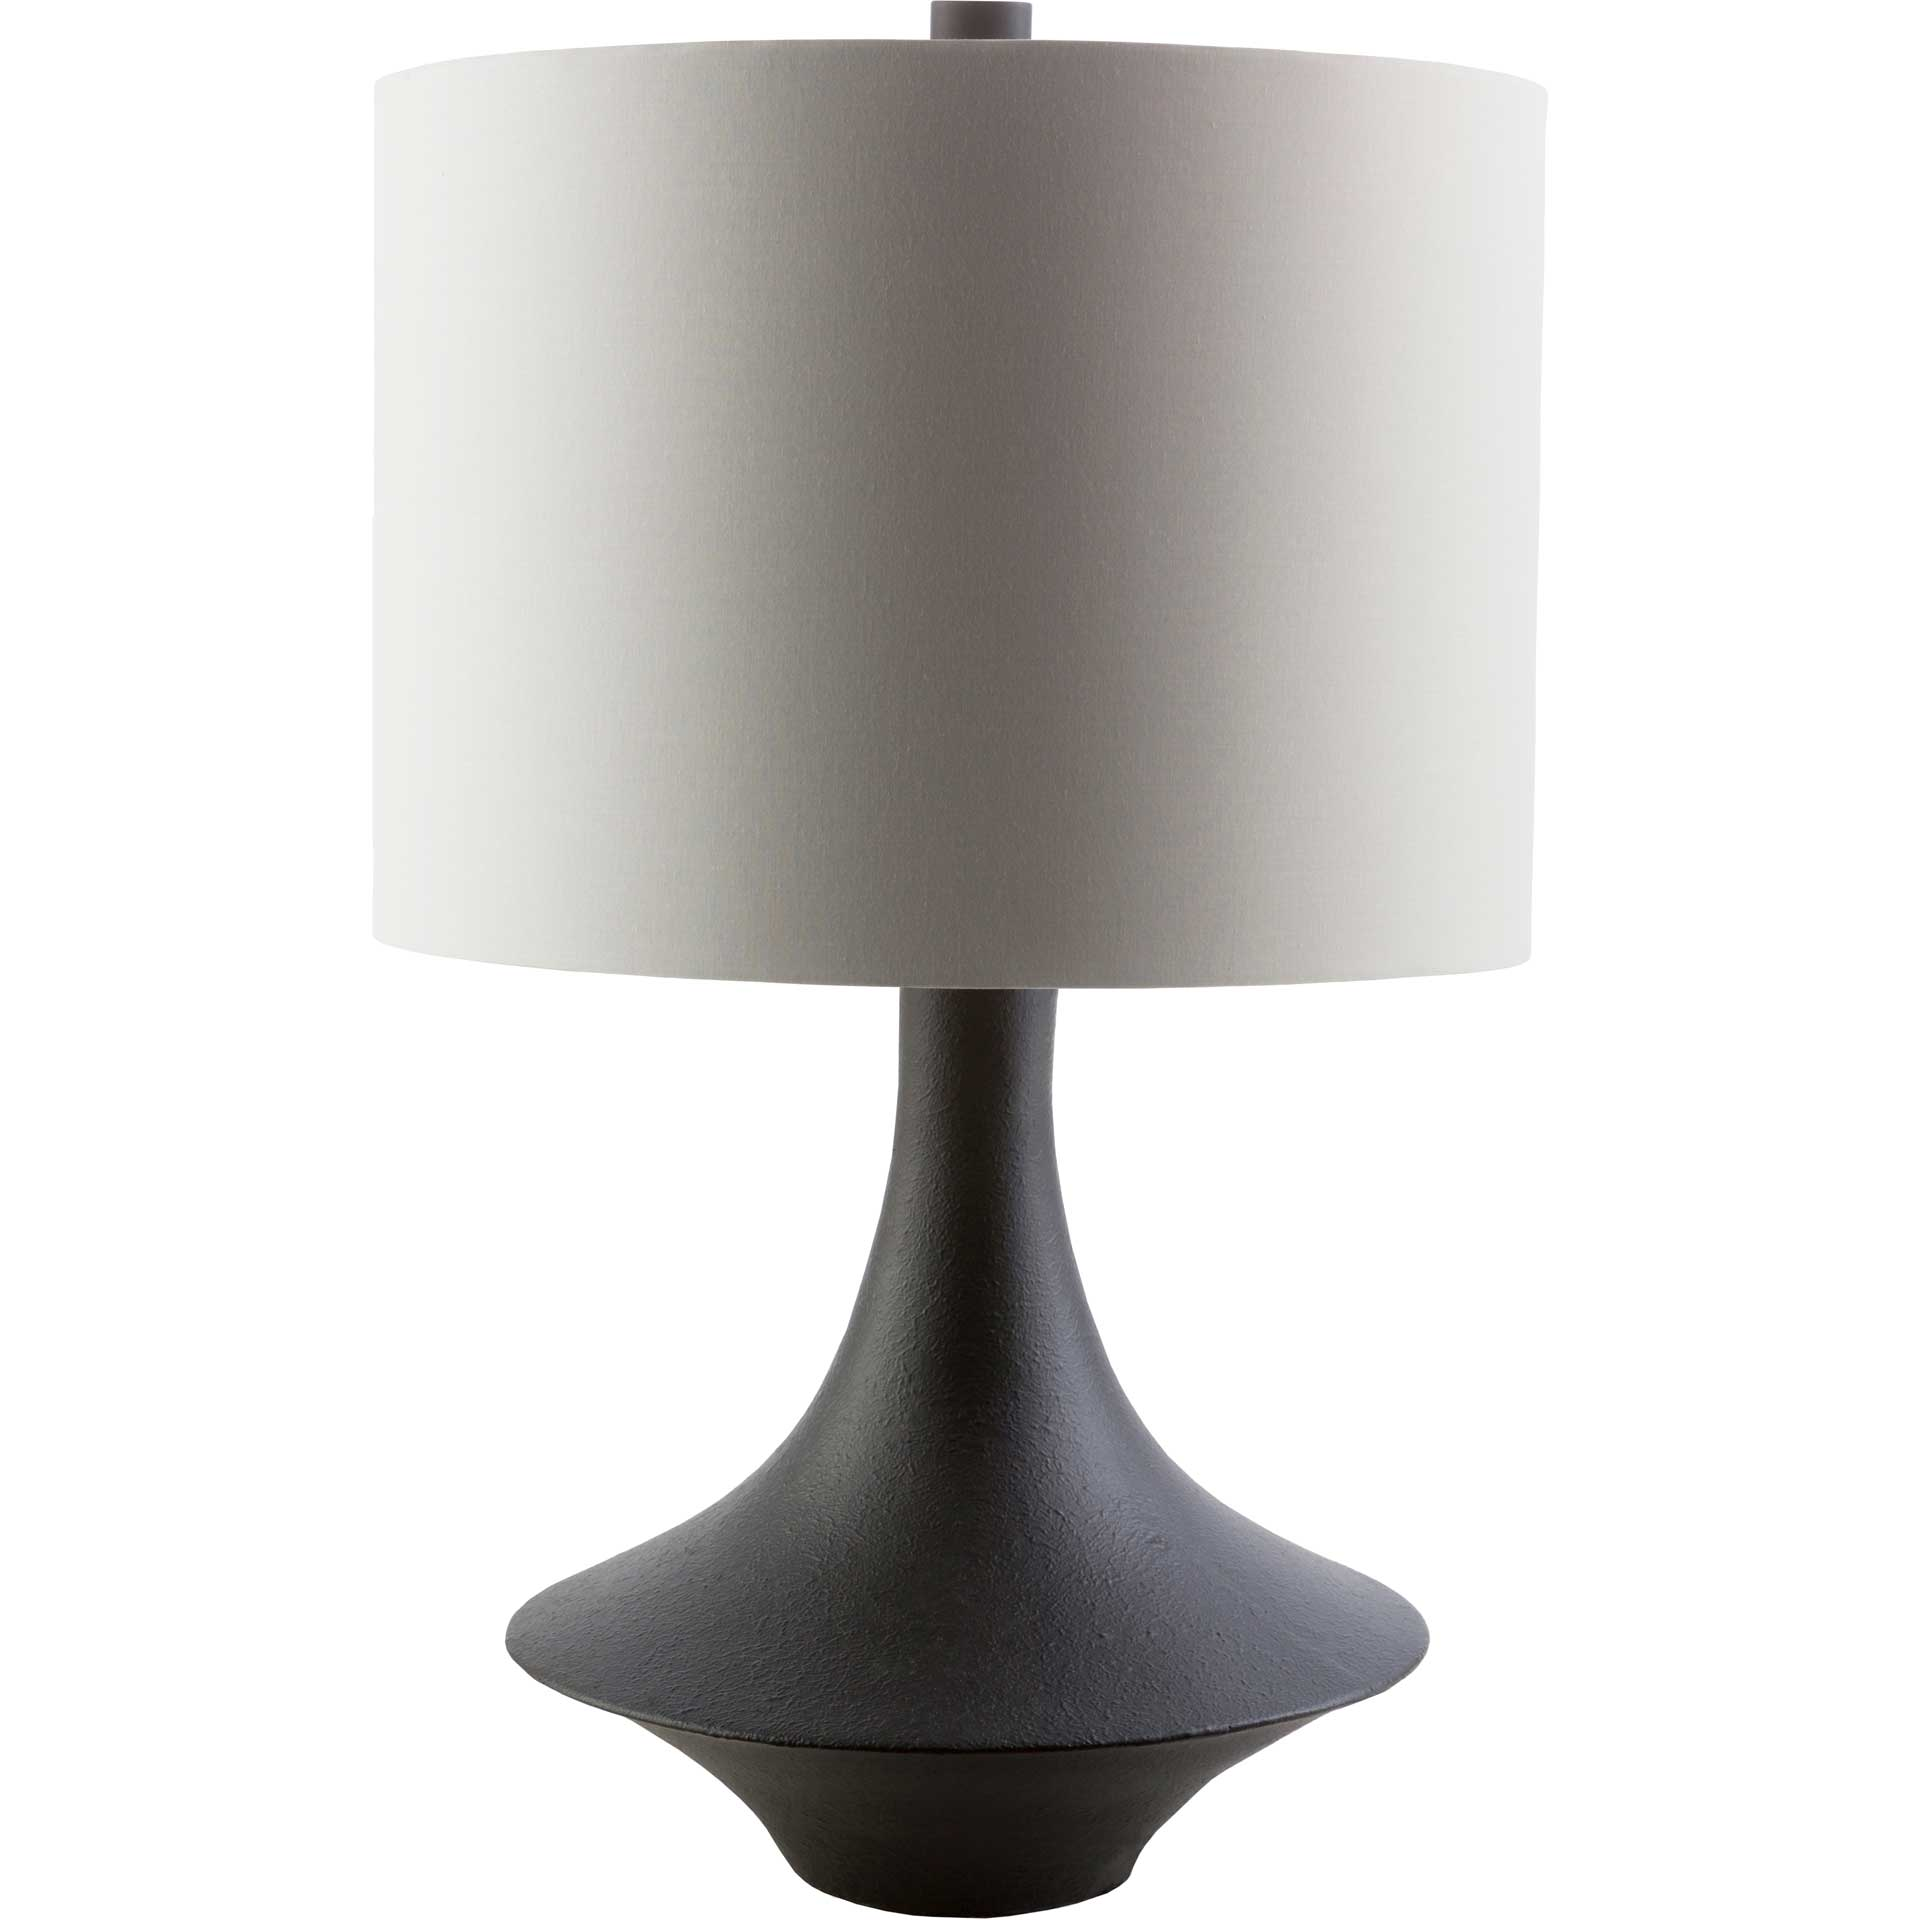 Brennan Table Lamp Black/White